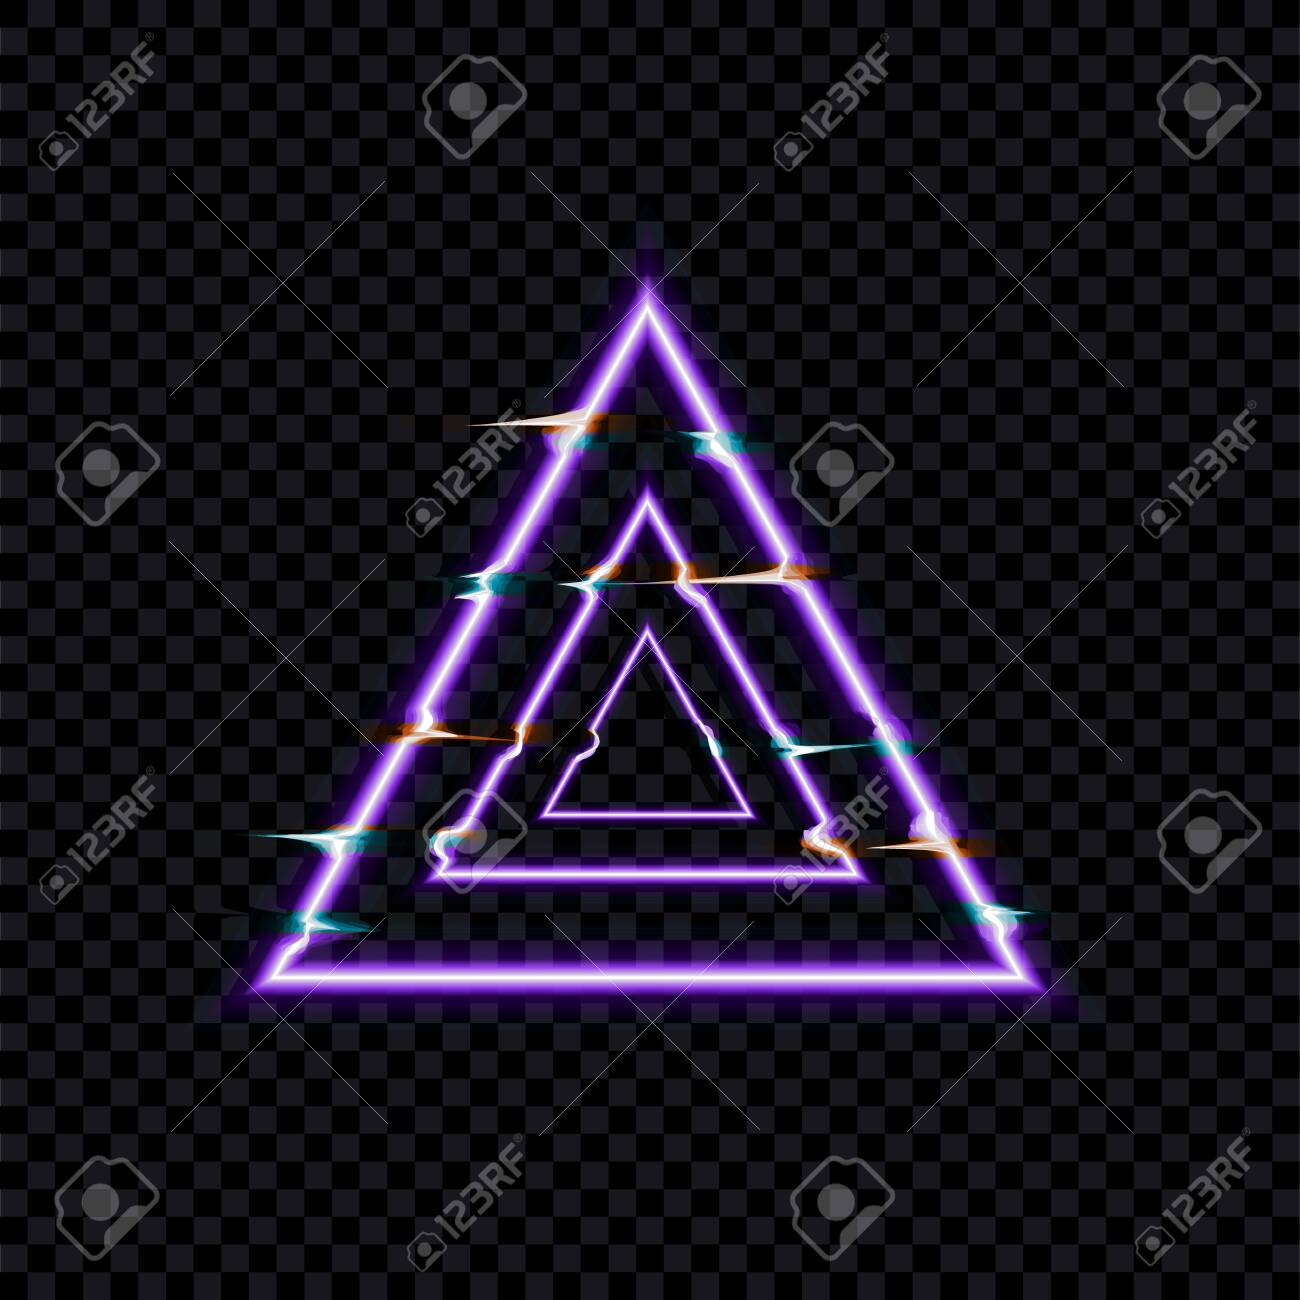 Vector Glitch Effect, Glows Distorted Triangles, Neon Icon Template Isolated on Dark Transparent Background. - 131626788